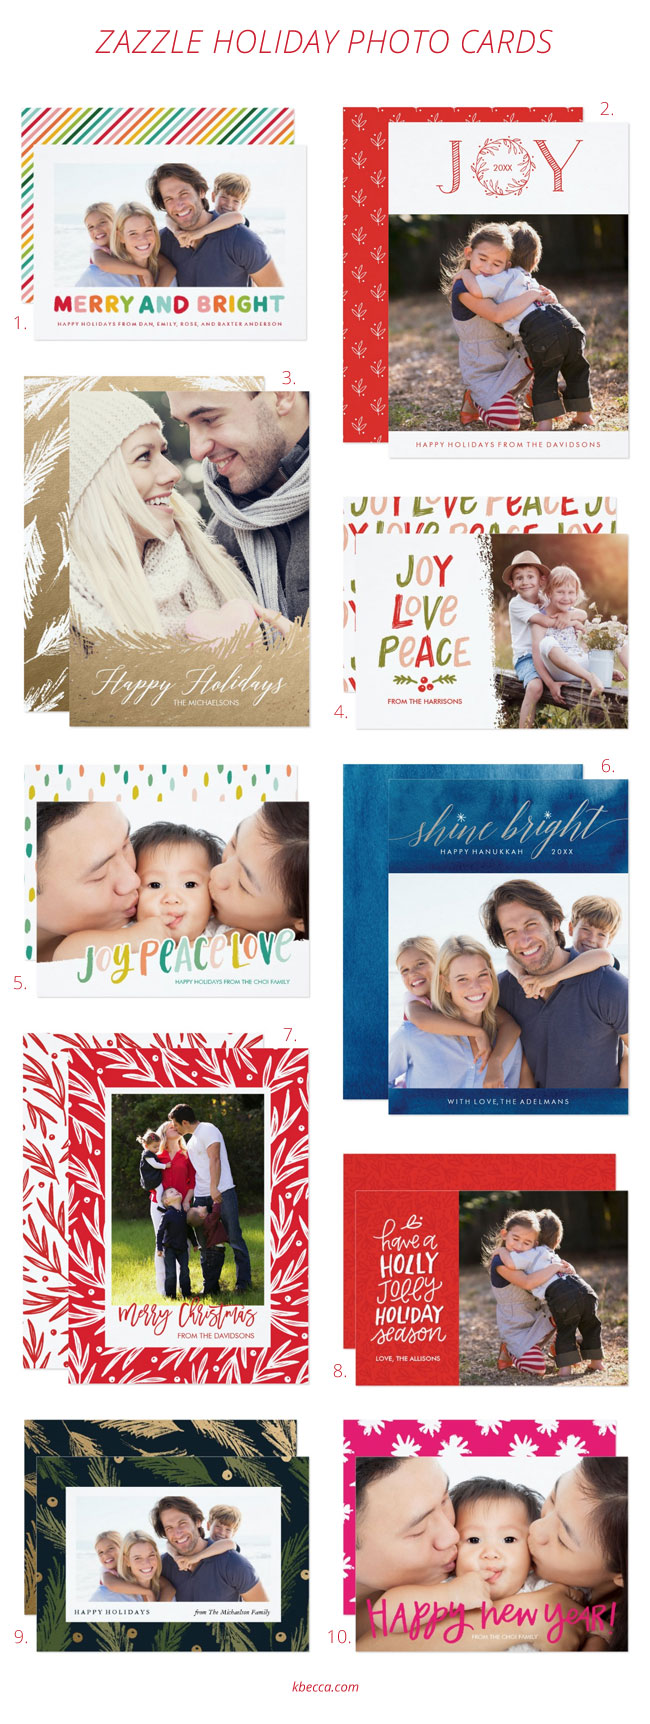 Zazzle Holiday Photo Cards by K.becca